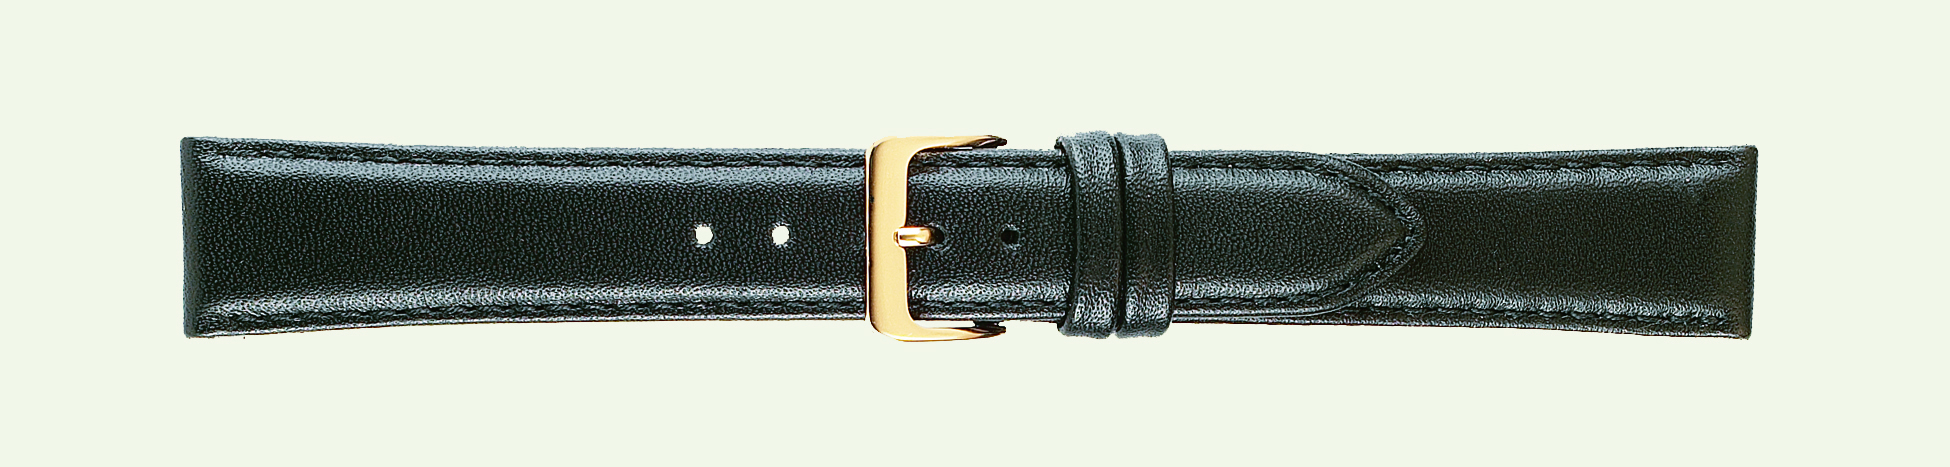 12MM Leather Band Black Classic Calf Extra Long-0